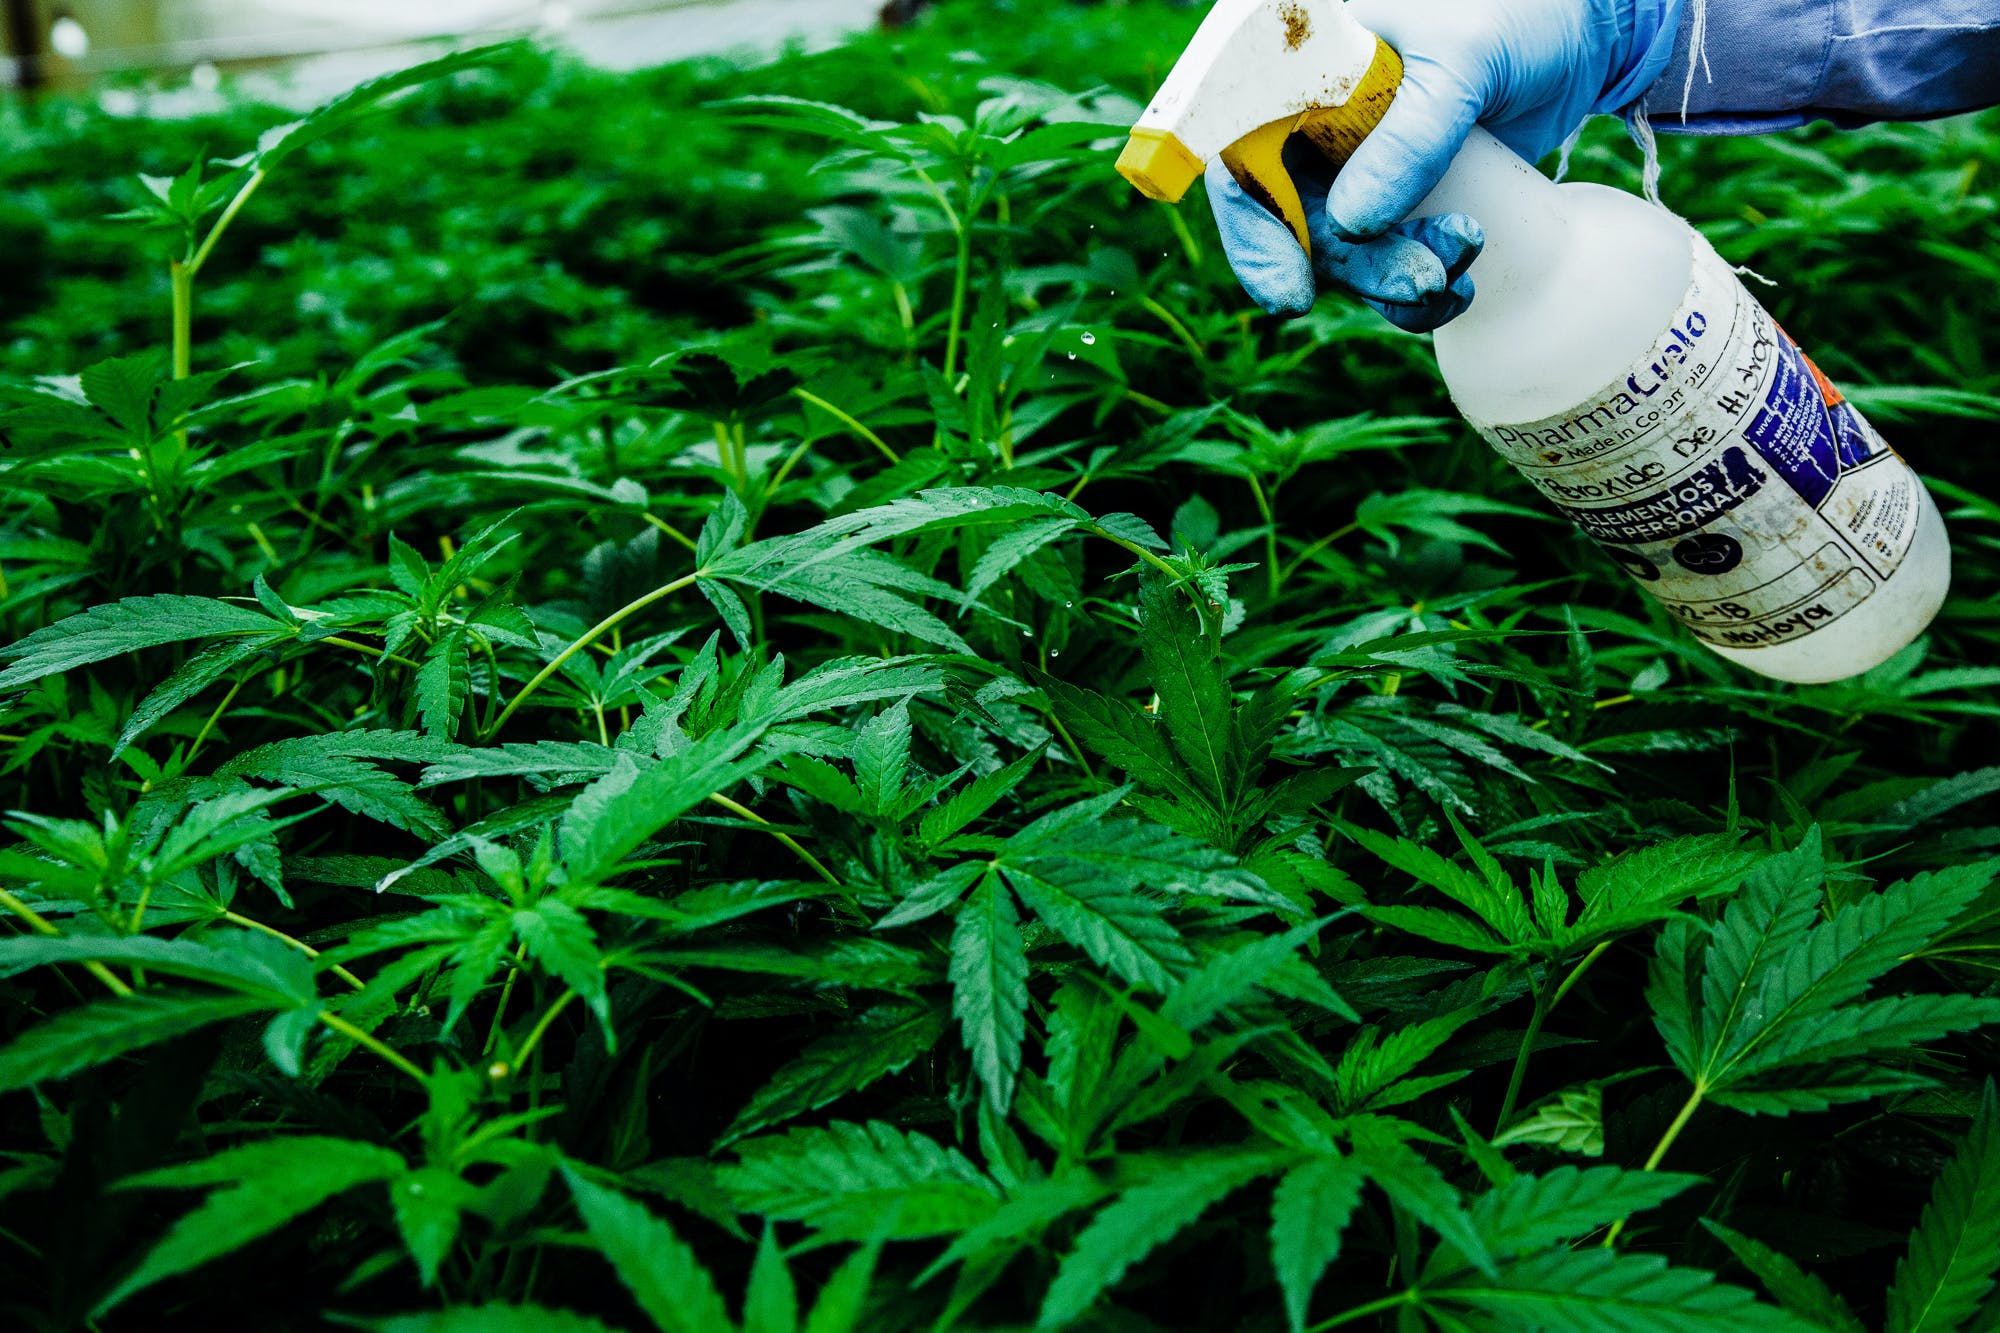 Pharmacielo could become a leader in the global medical cannabis market 13 Cannabis is Legal in Vermont, But Gifting it Isnt